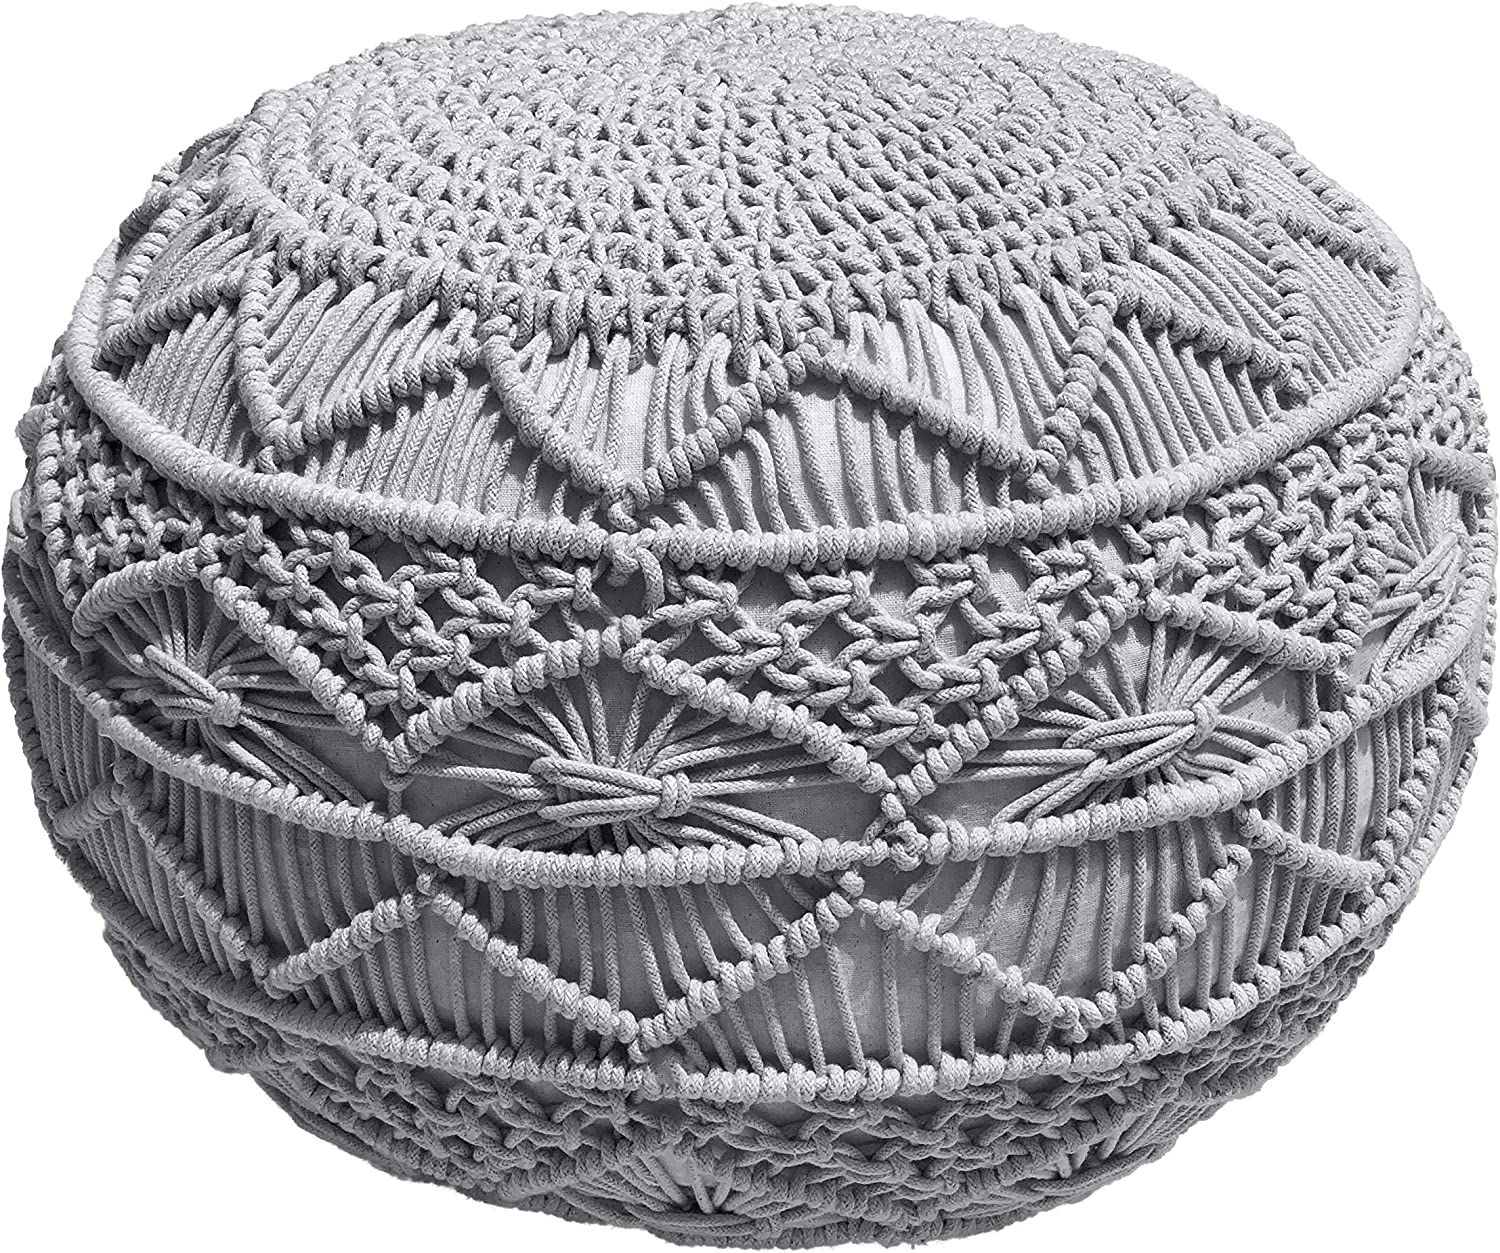 Macram/é Pouf Casa Platino Pouf Ottoman Hand Knitted Cable Style Dori Pouf Cotton Braid Cord 20 Dia X 14 Height Natural Truly One of A Kind Seating Handmade /& Hand Stitched Floor Ottoman